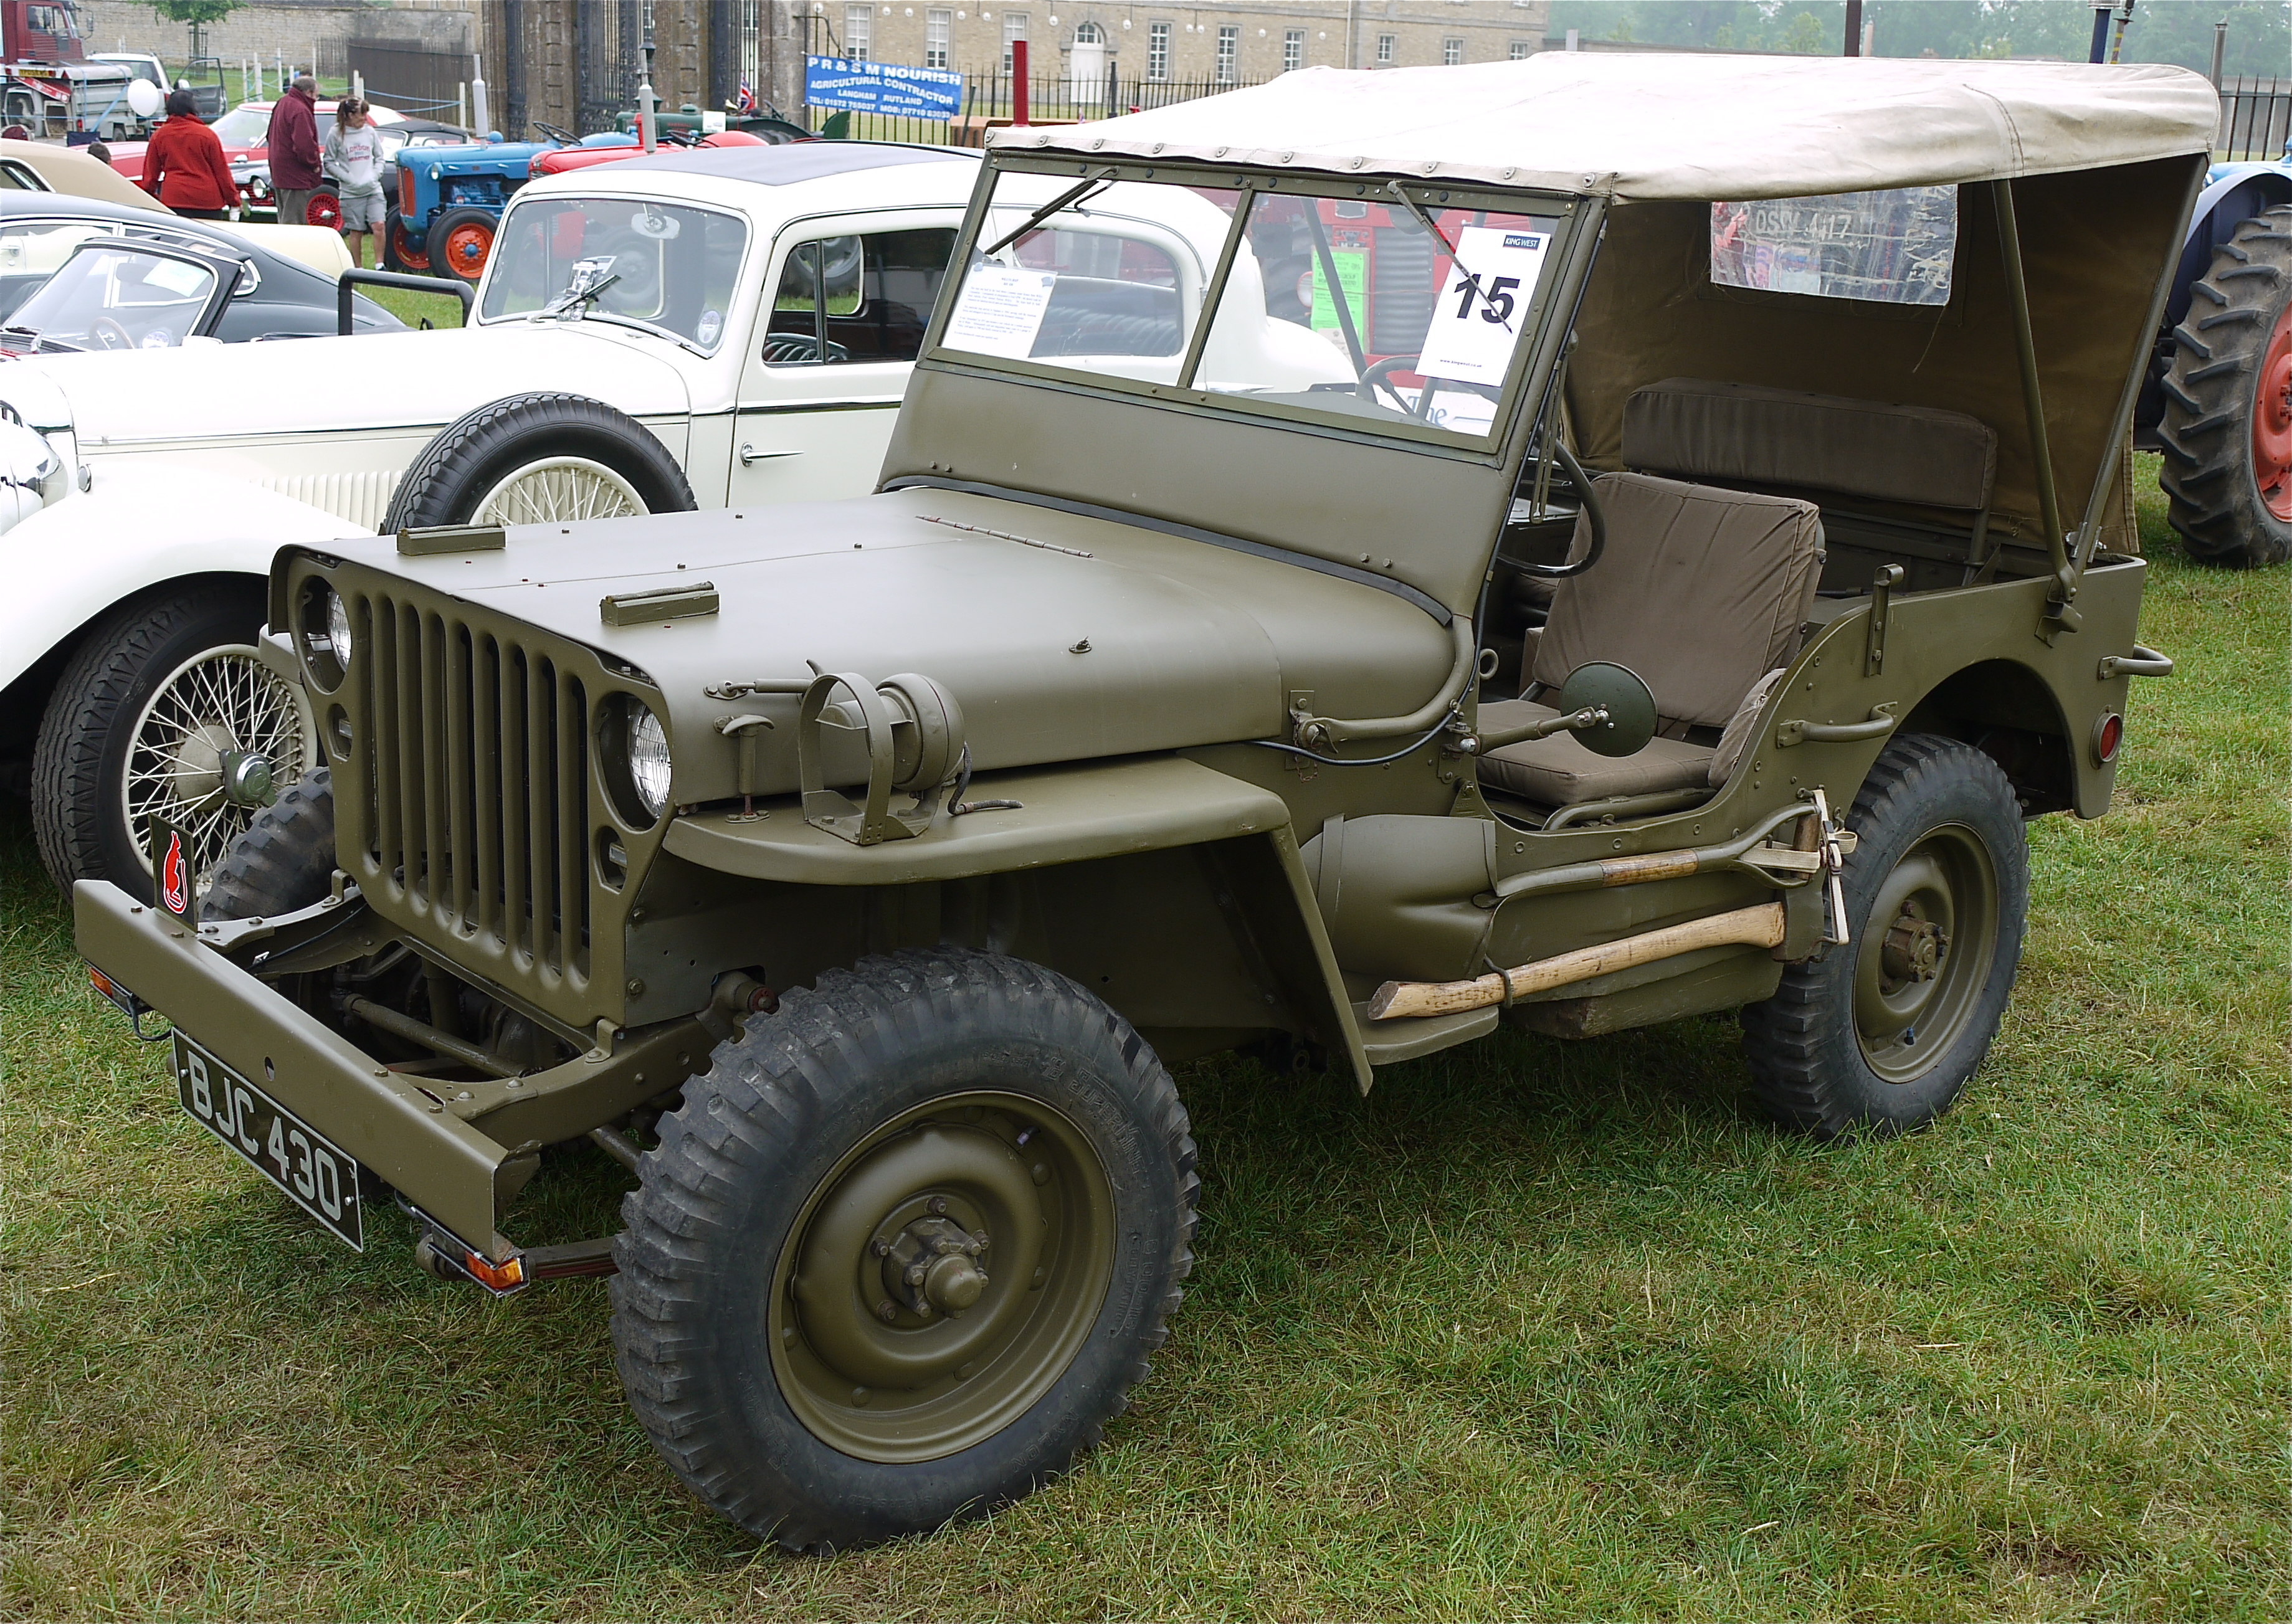 1945 Willys Military Jeep Auto Electrical Wiring Diagram 1953 Mb Ford Gpw And Hotchkiss Parts